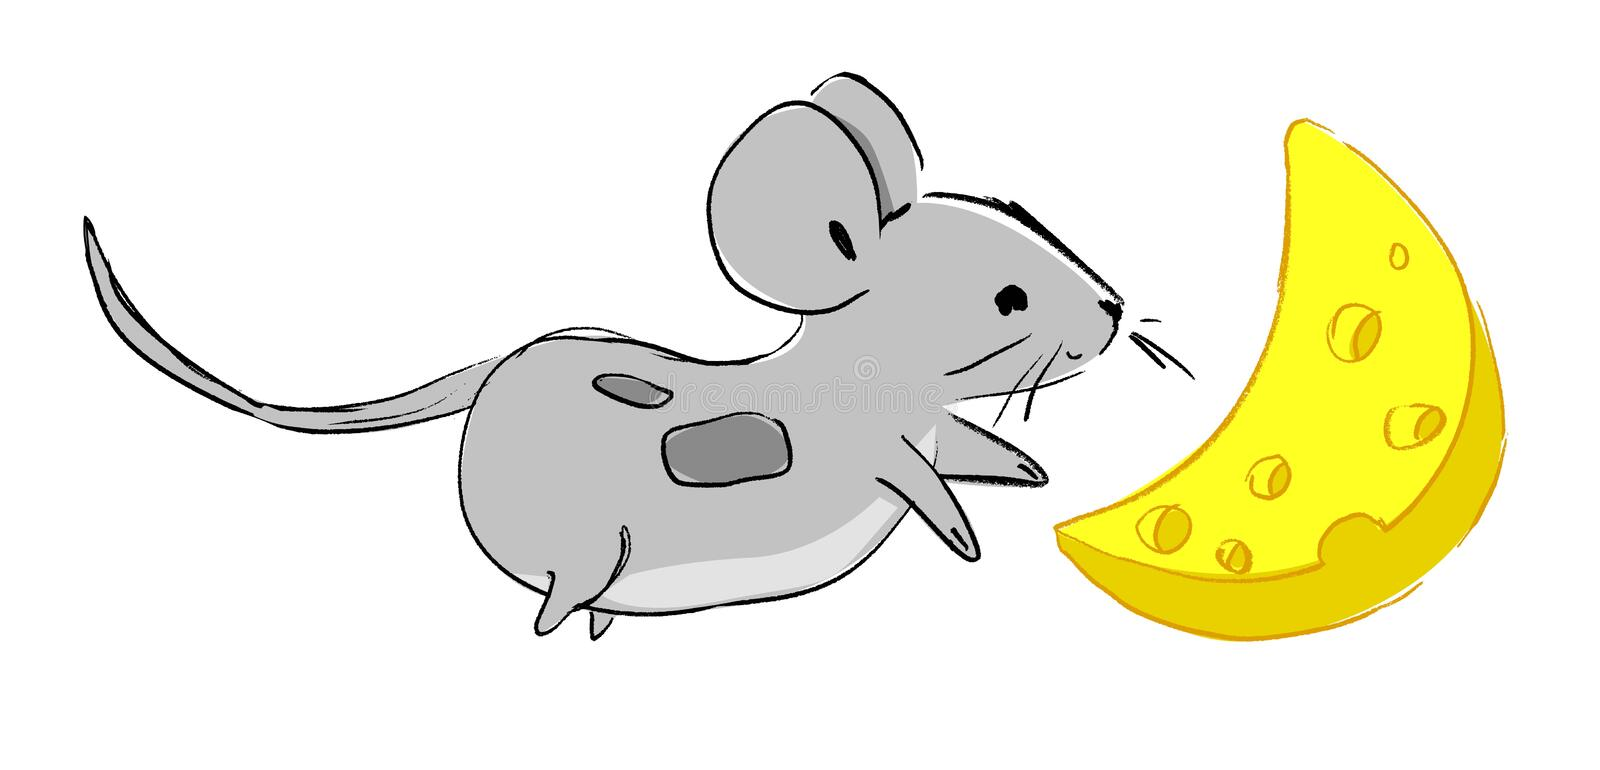 Hand drawn cute Mouse with cheese, cartoon character childish illustration. Rat Sketch. Vector royalty free illustration